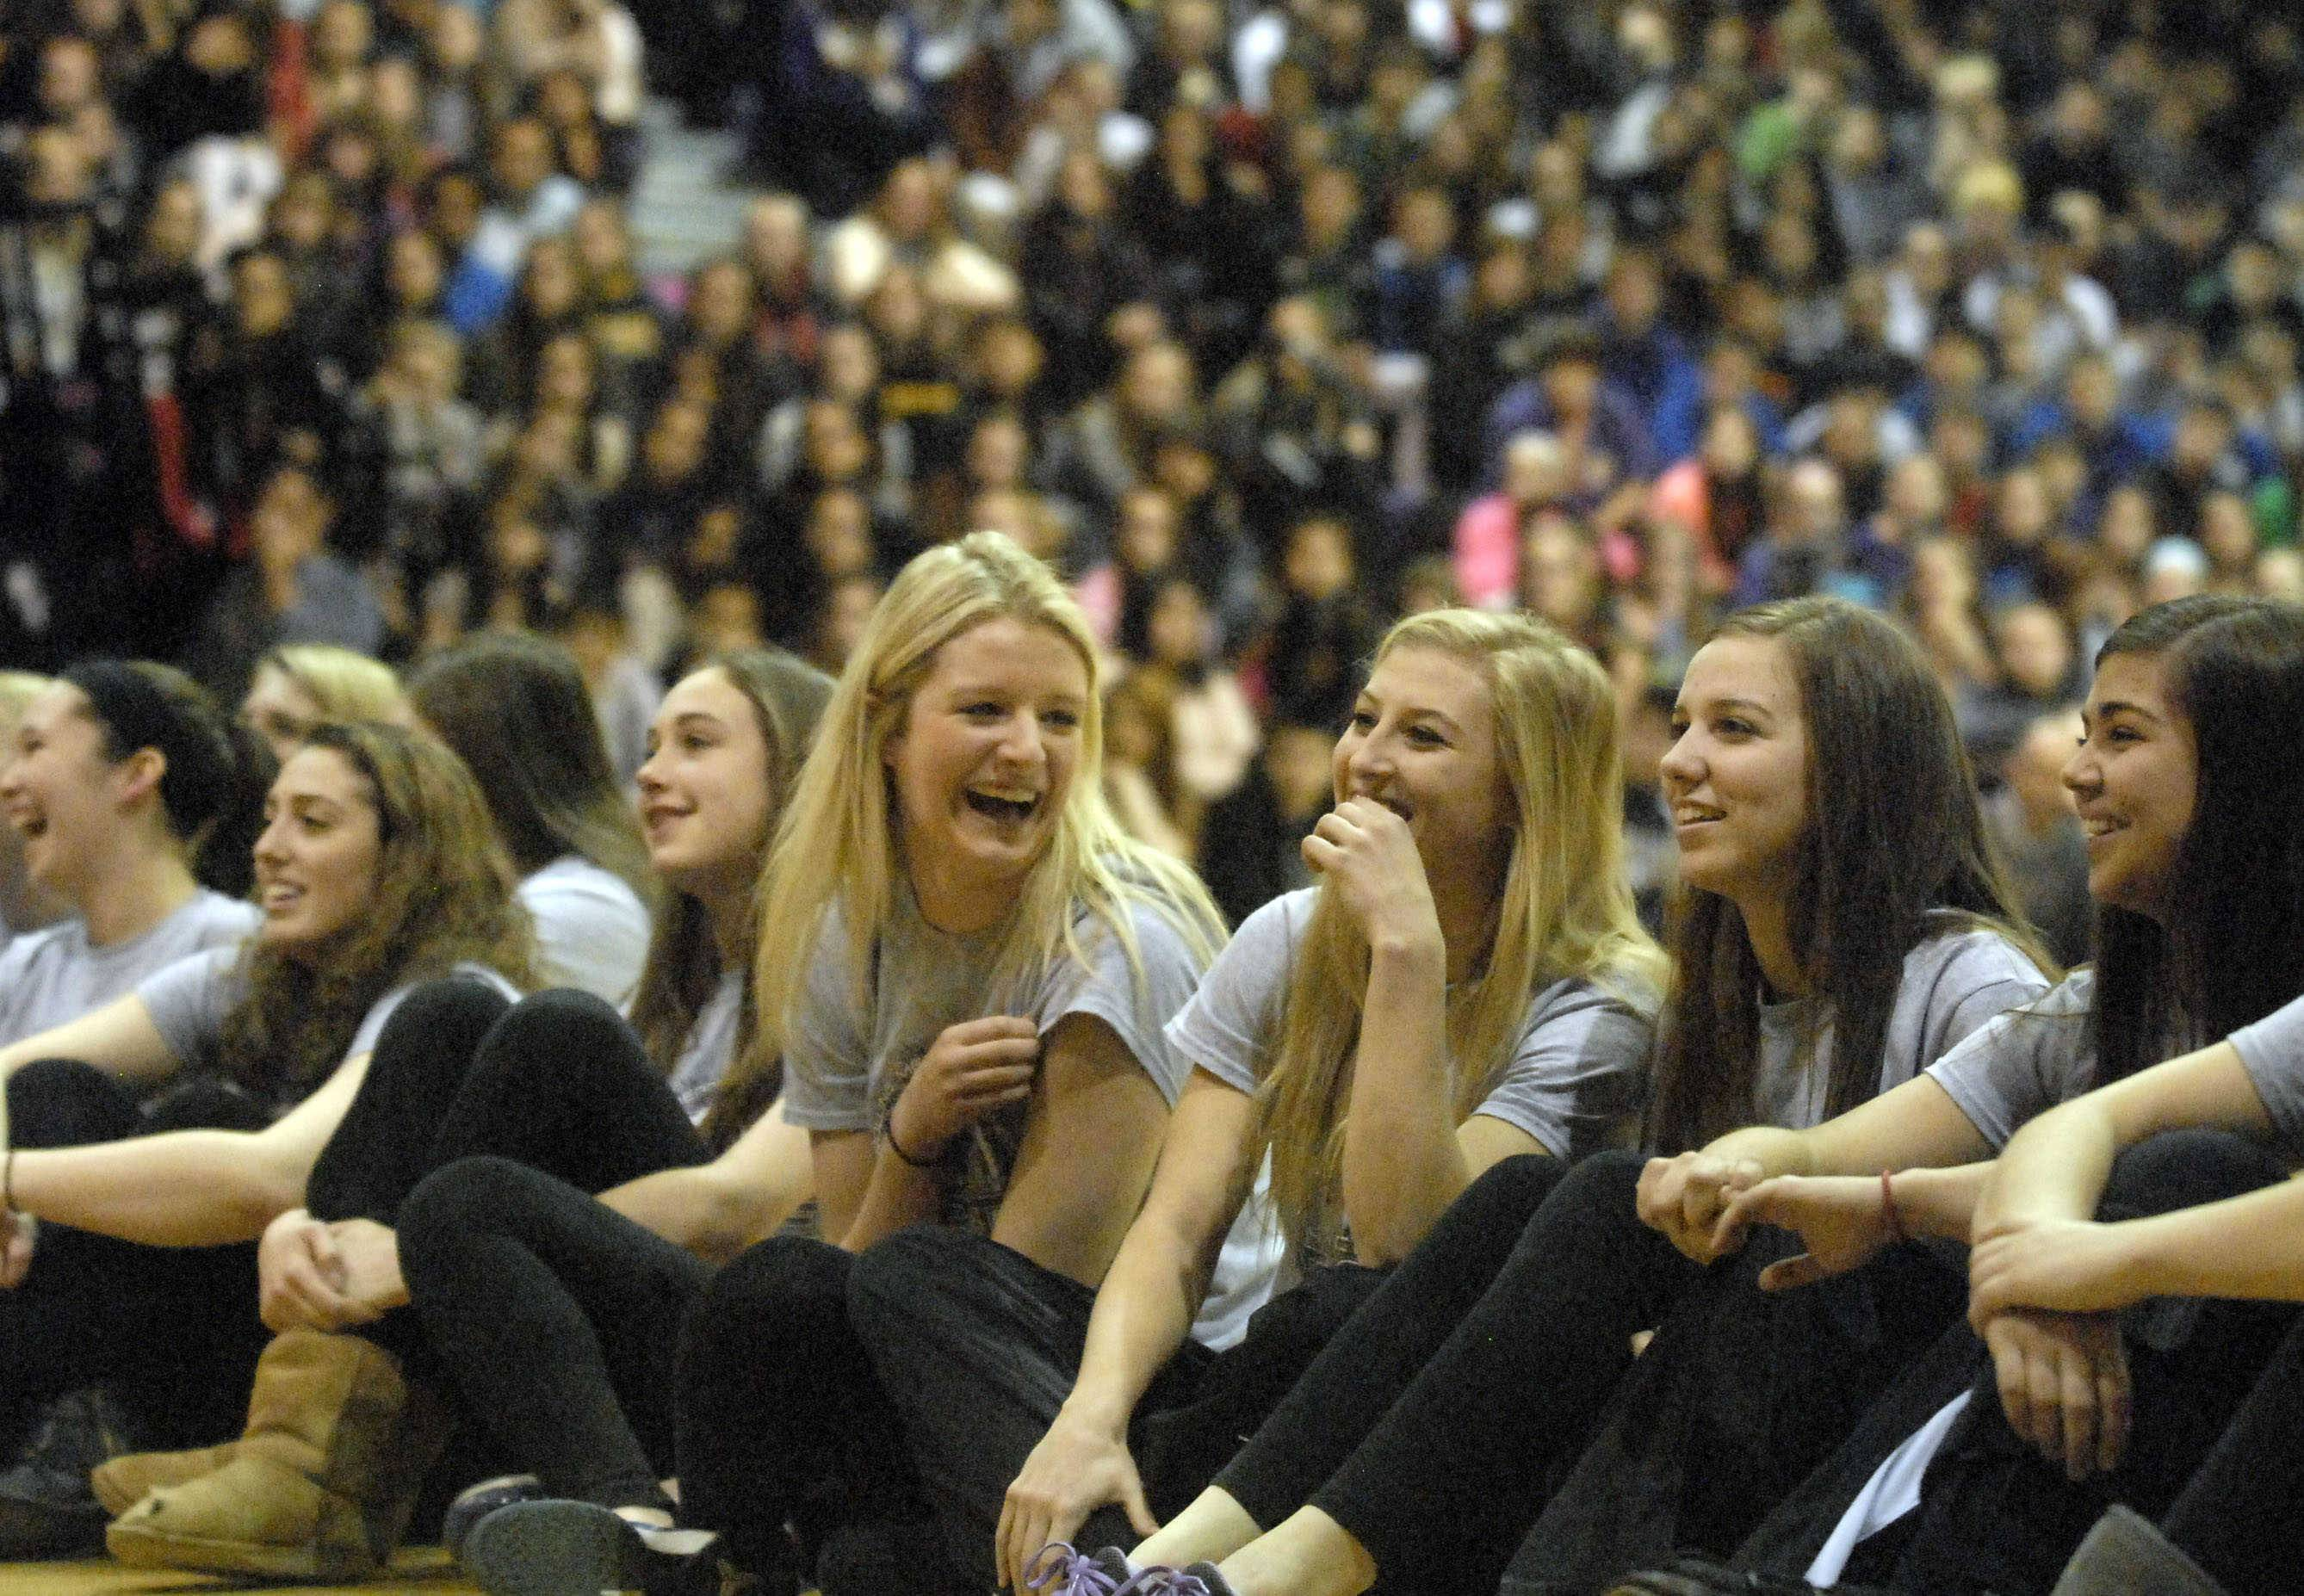 Rolling Meadows' Jenny Vliet, center, shares a laugh with teammate Jackie Kemph, center right, and others as they watch a highlight video during a pep assembly at the school on Monday.